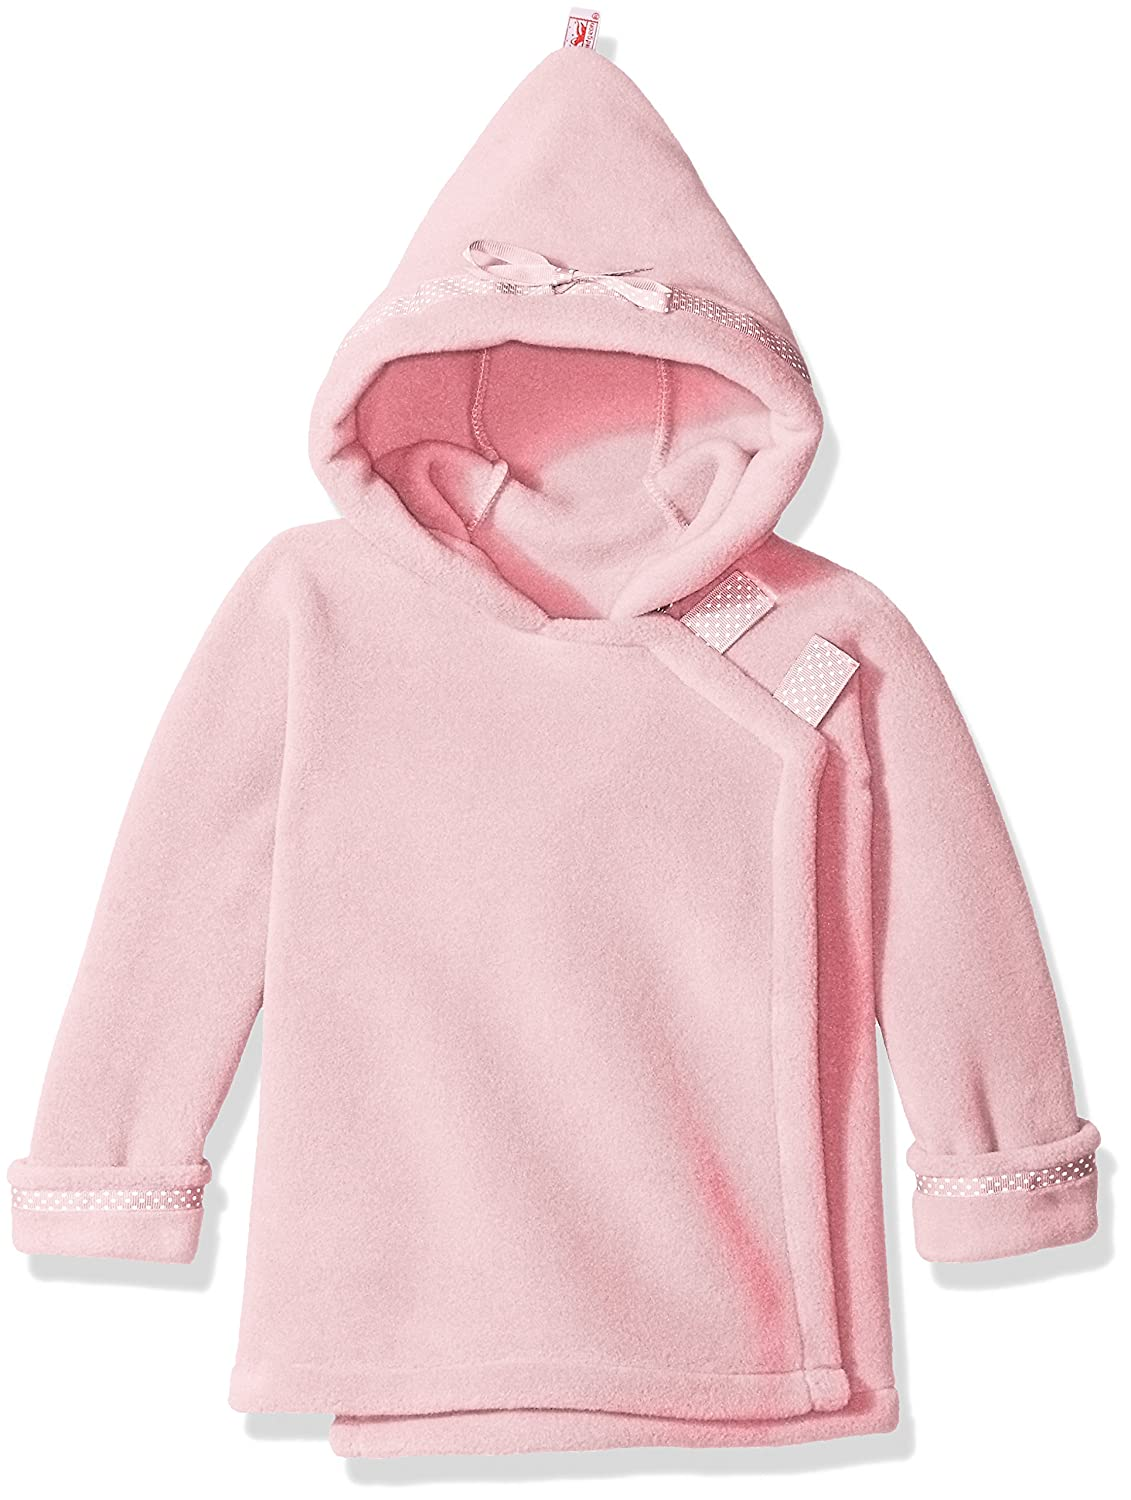 Widgeon Baby Little Kids Polartec Fleece Warmplus Hooded Wrap Jacket